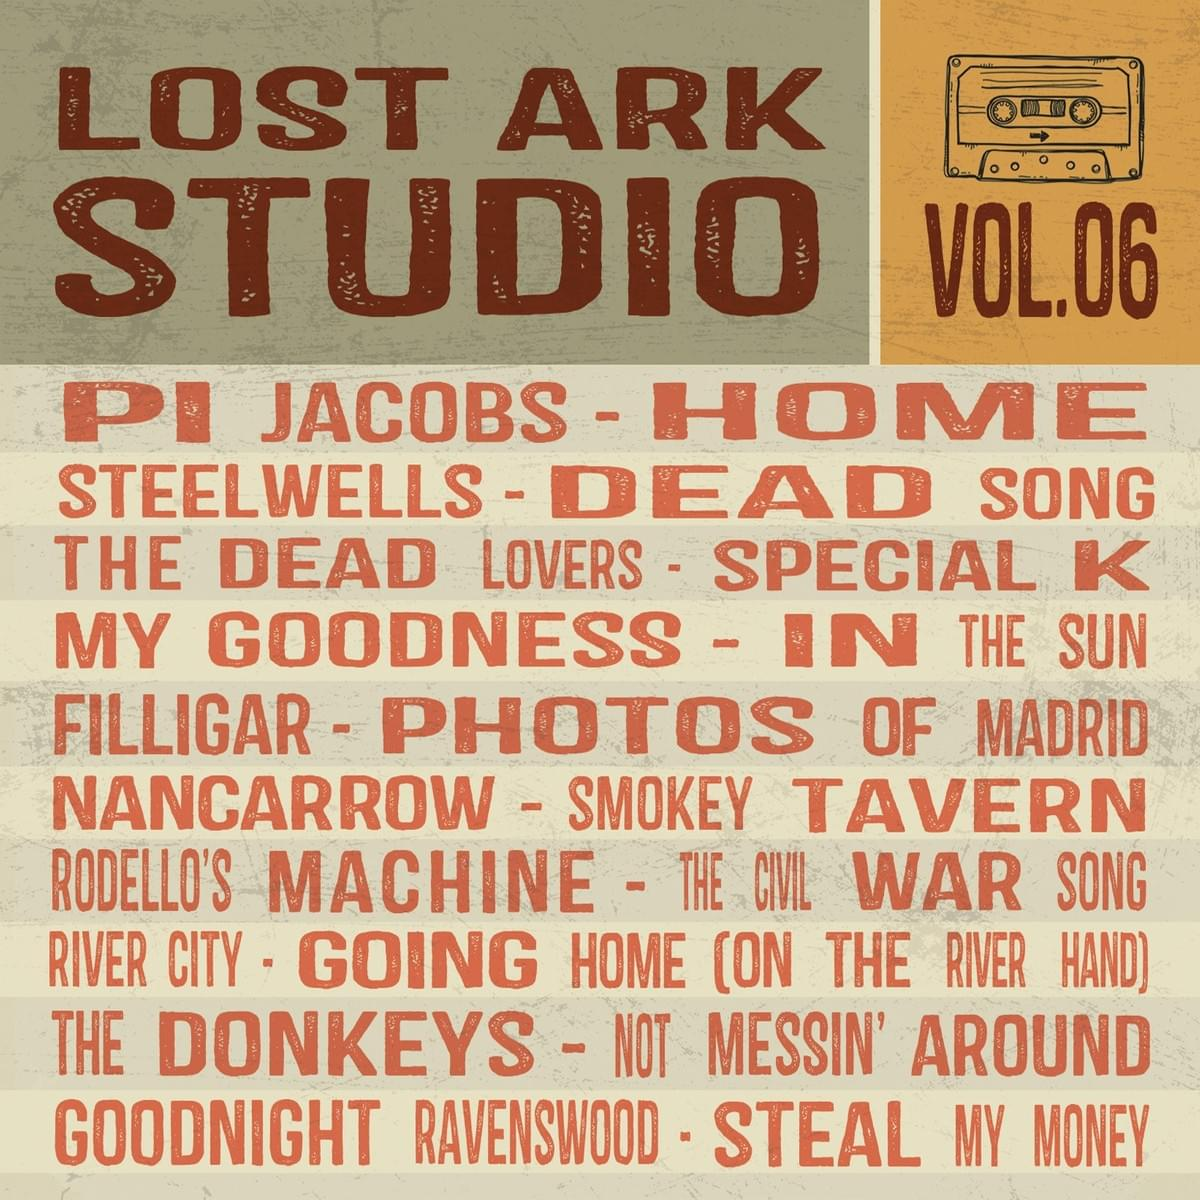 Lost Ark Studio Compilation - Vol. 06